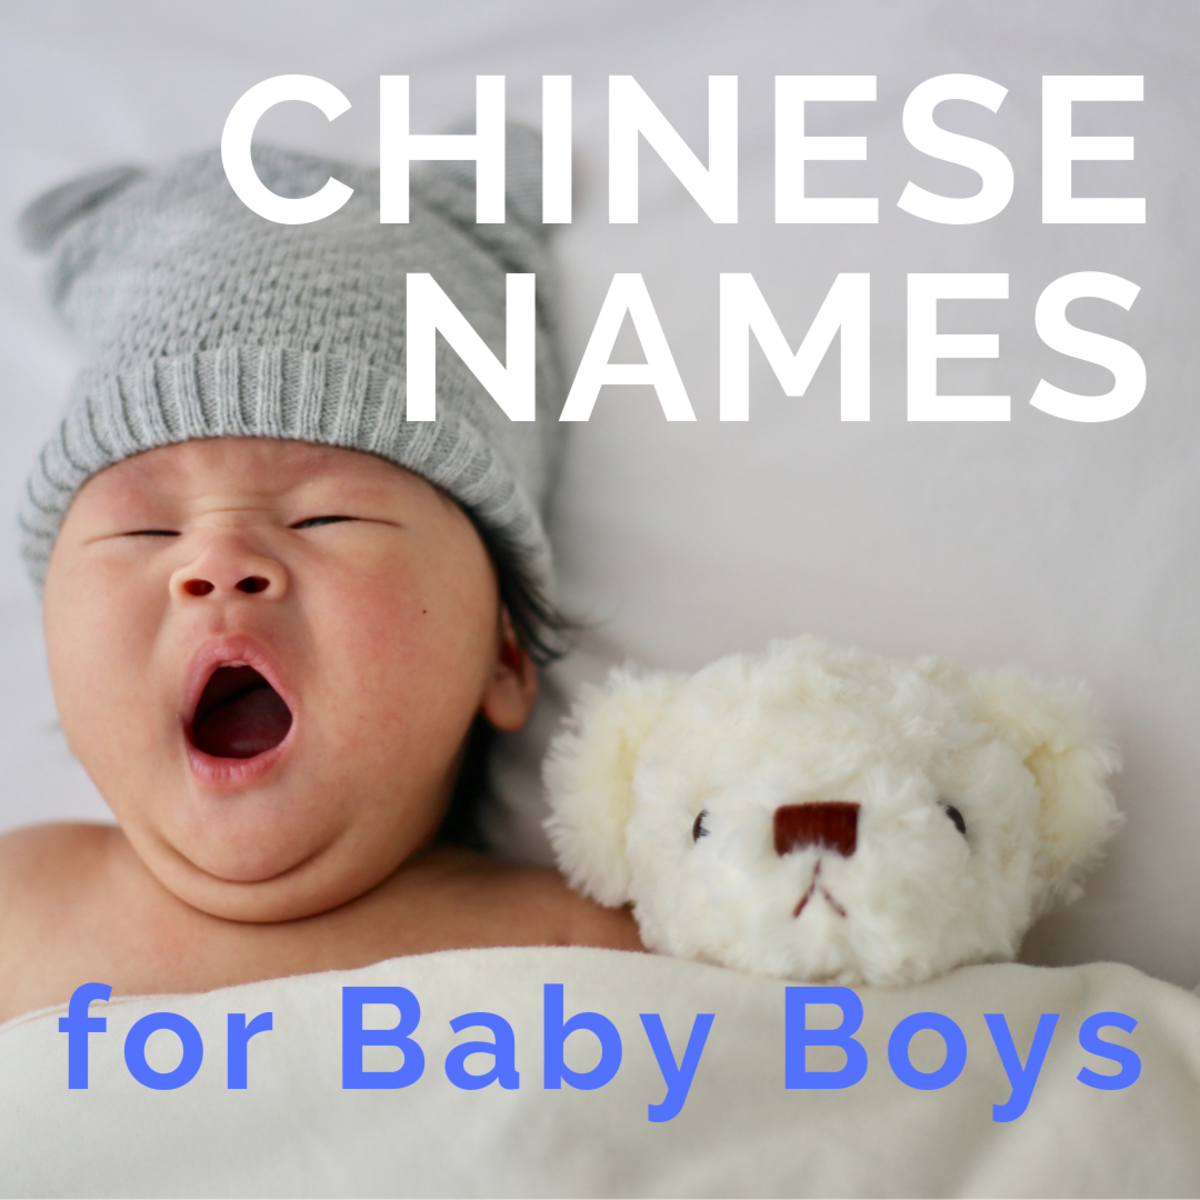 Chinese Names for Baby Boys